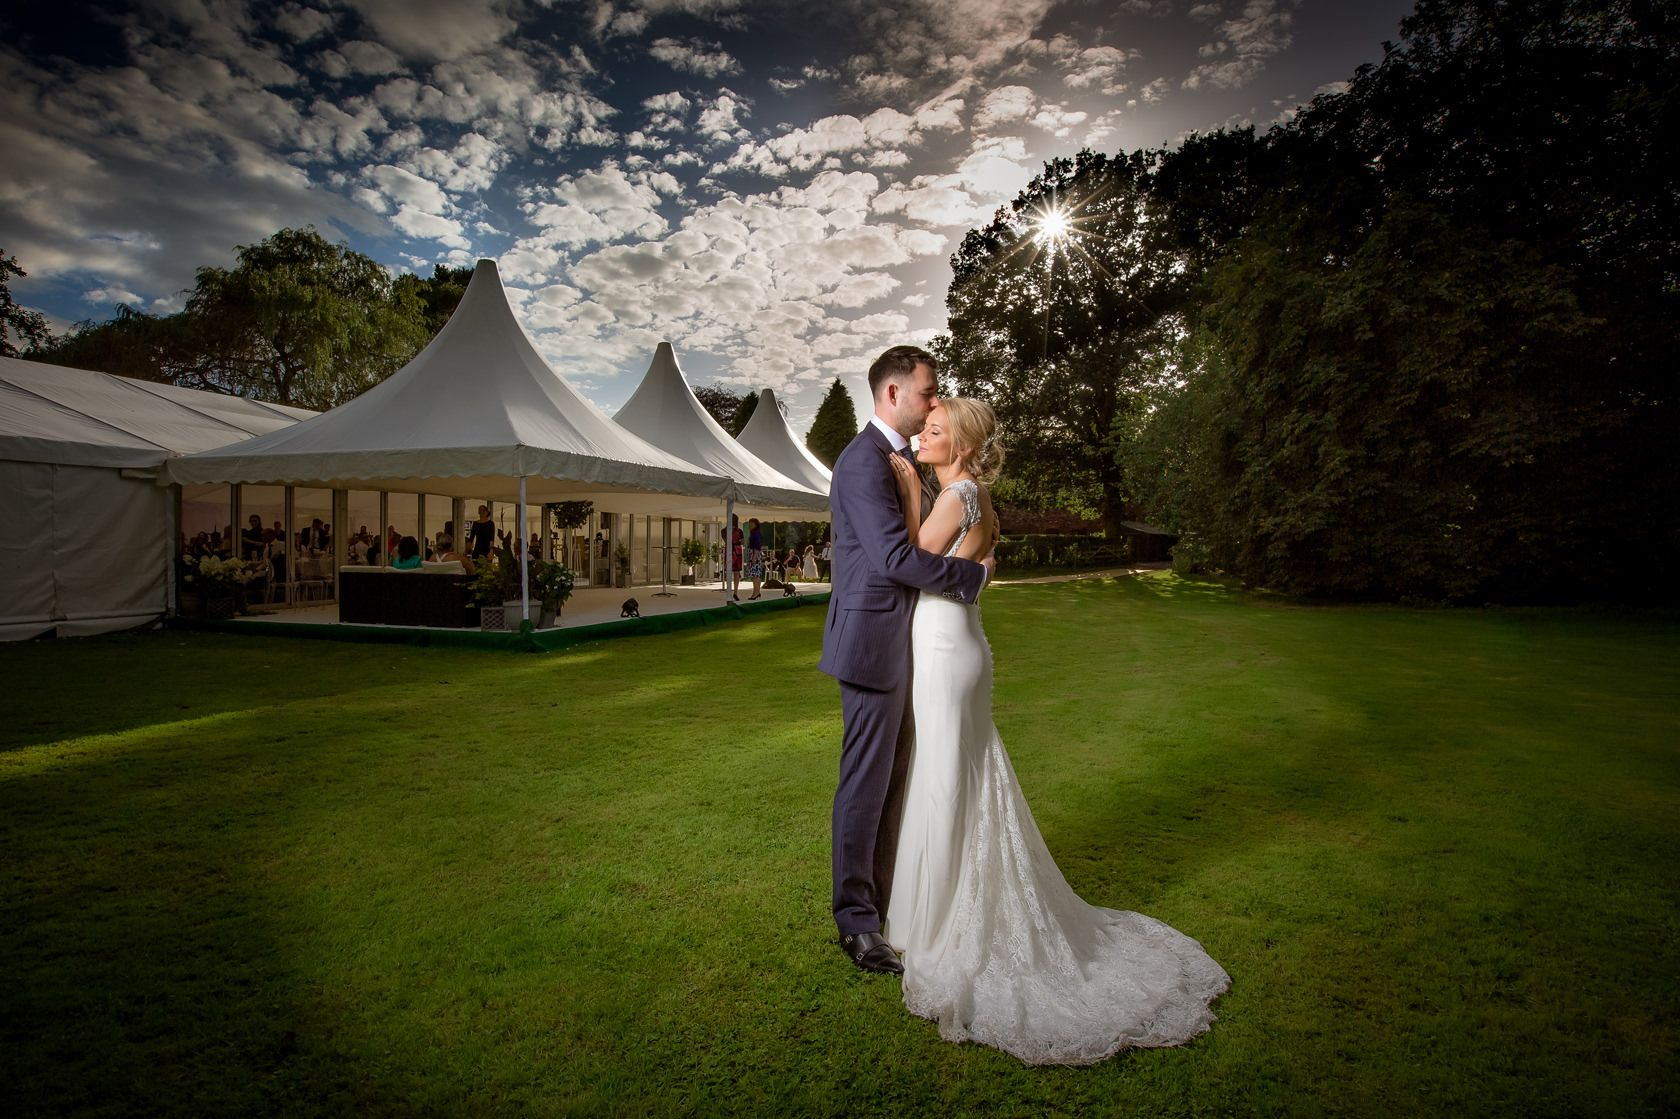 A groom holds his beautiful bride closely during sunset at their outdoor Marquee wedding in Peover Cheshire